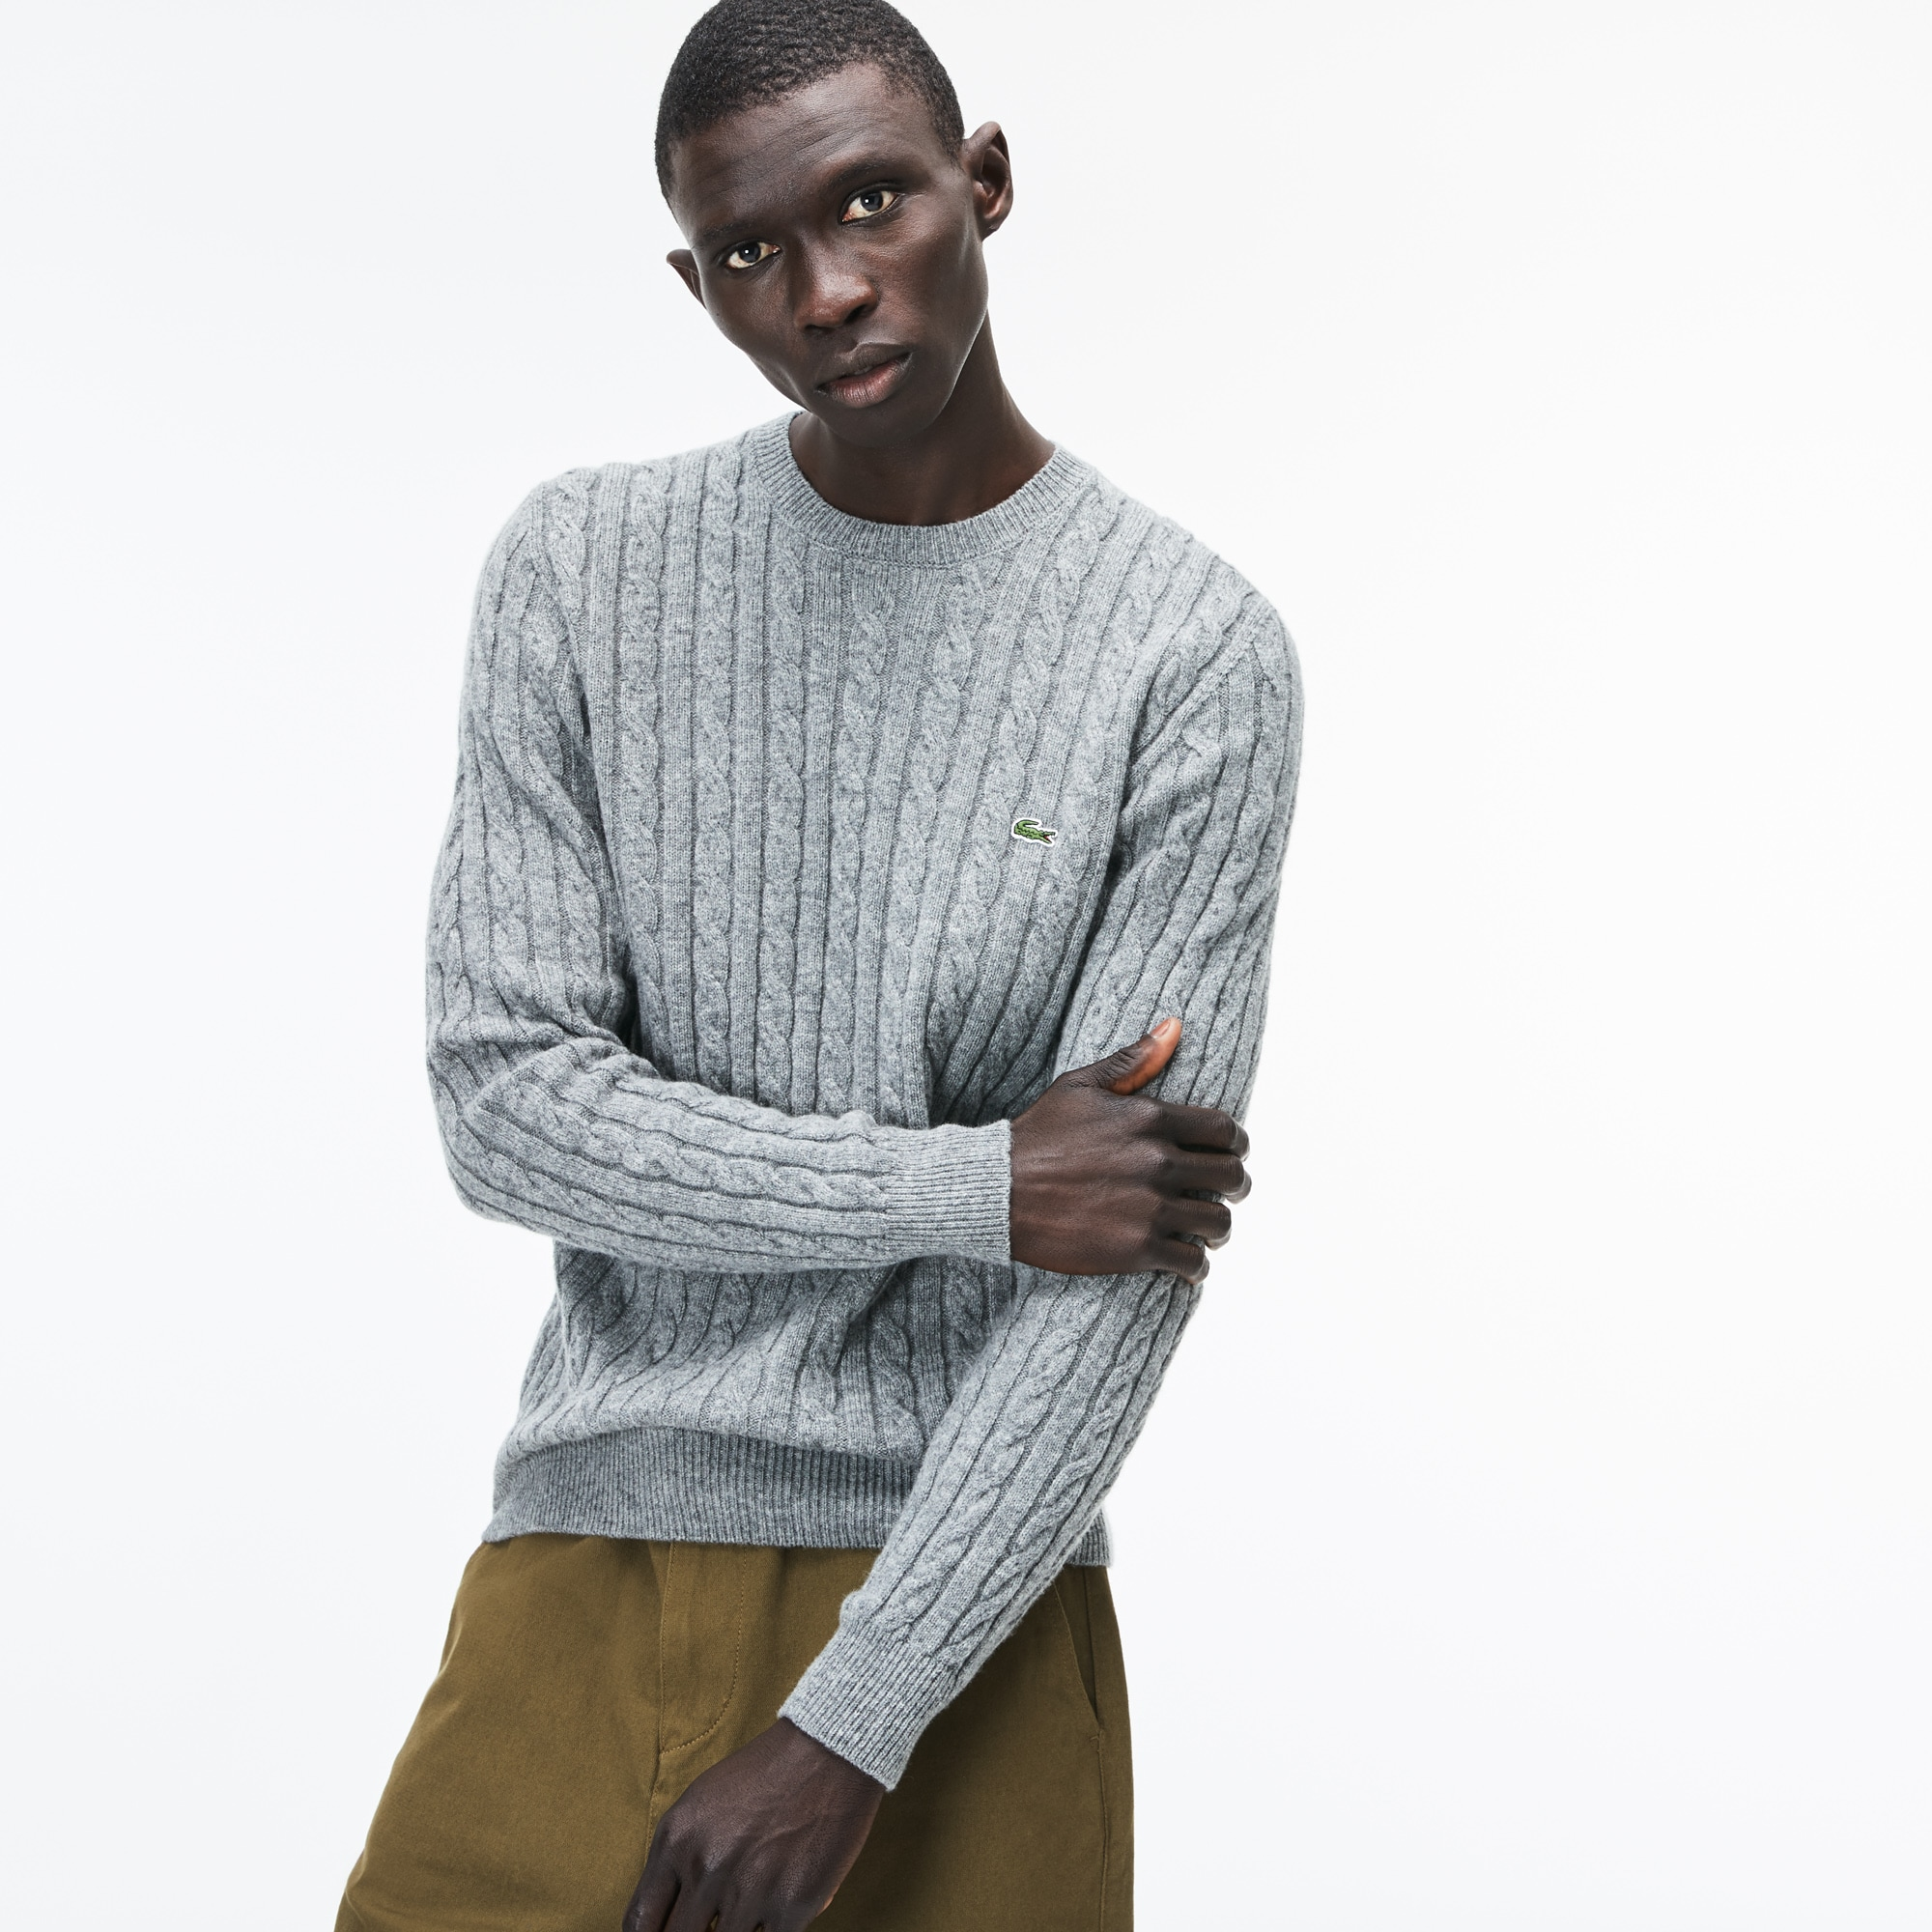 fb7113806d9 Men's Crew Neck Wool Cable Knit Effect Sweater